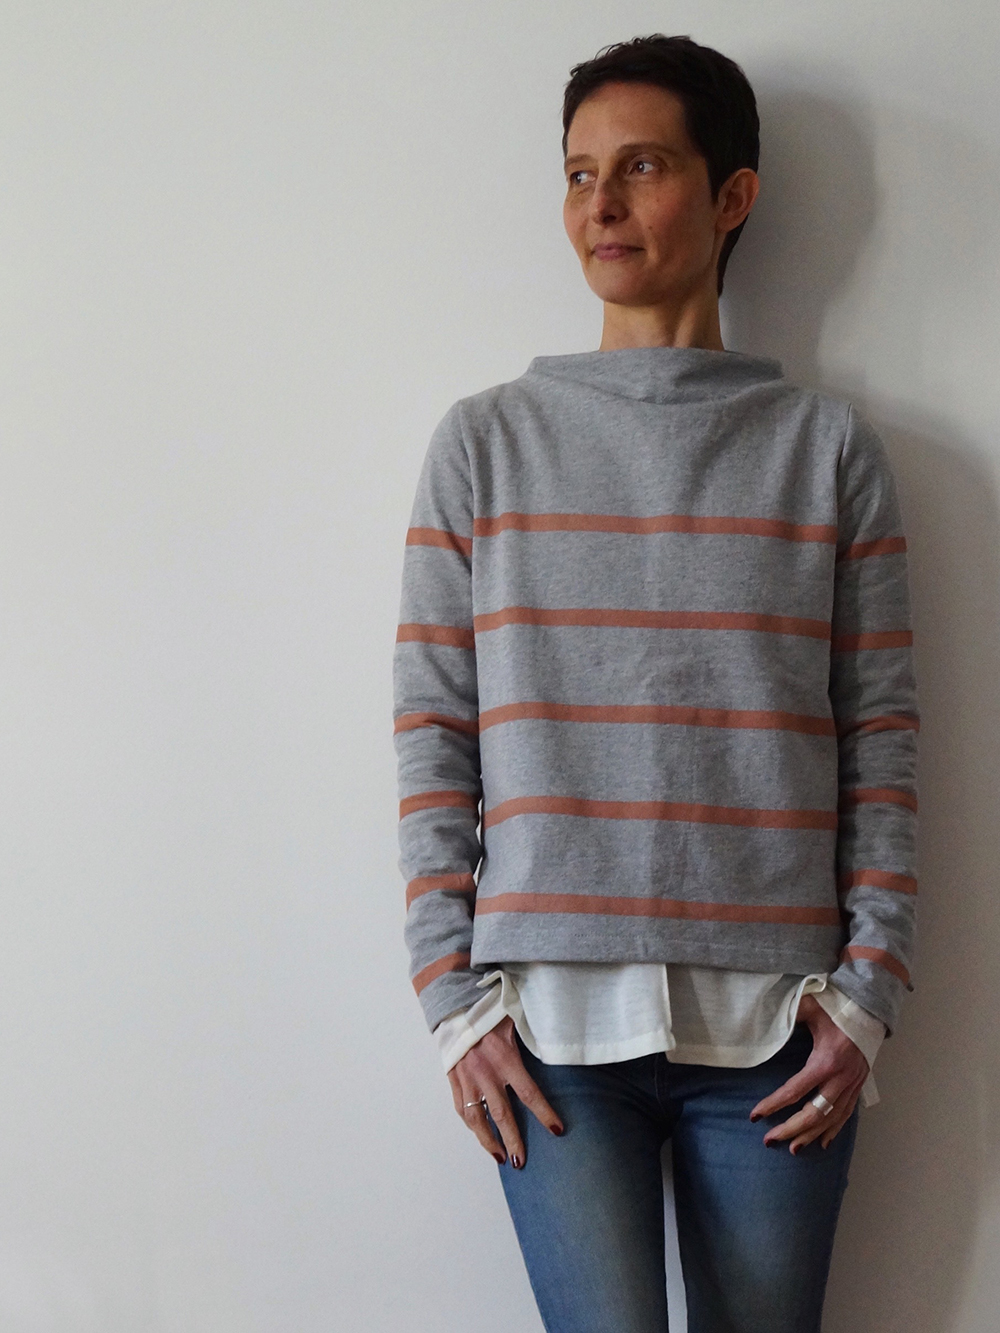 Näh-Connection: Toaster Sweater #2 (auf Deutsch nur bei Näh-Connection) - Designbeispiel von Lulus bunte Welt